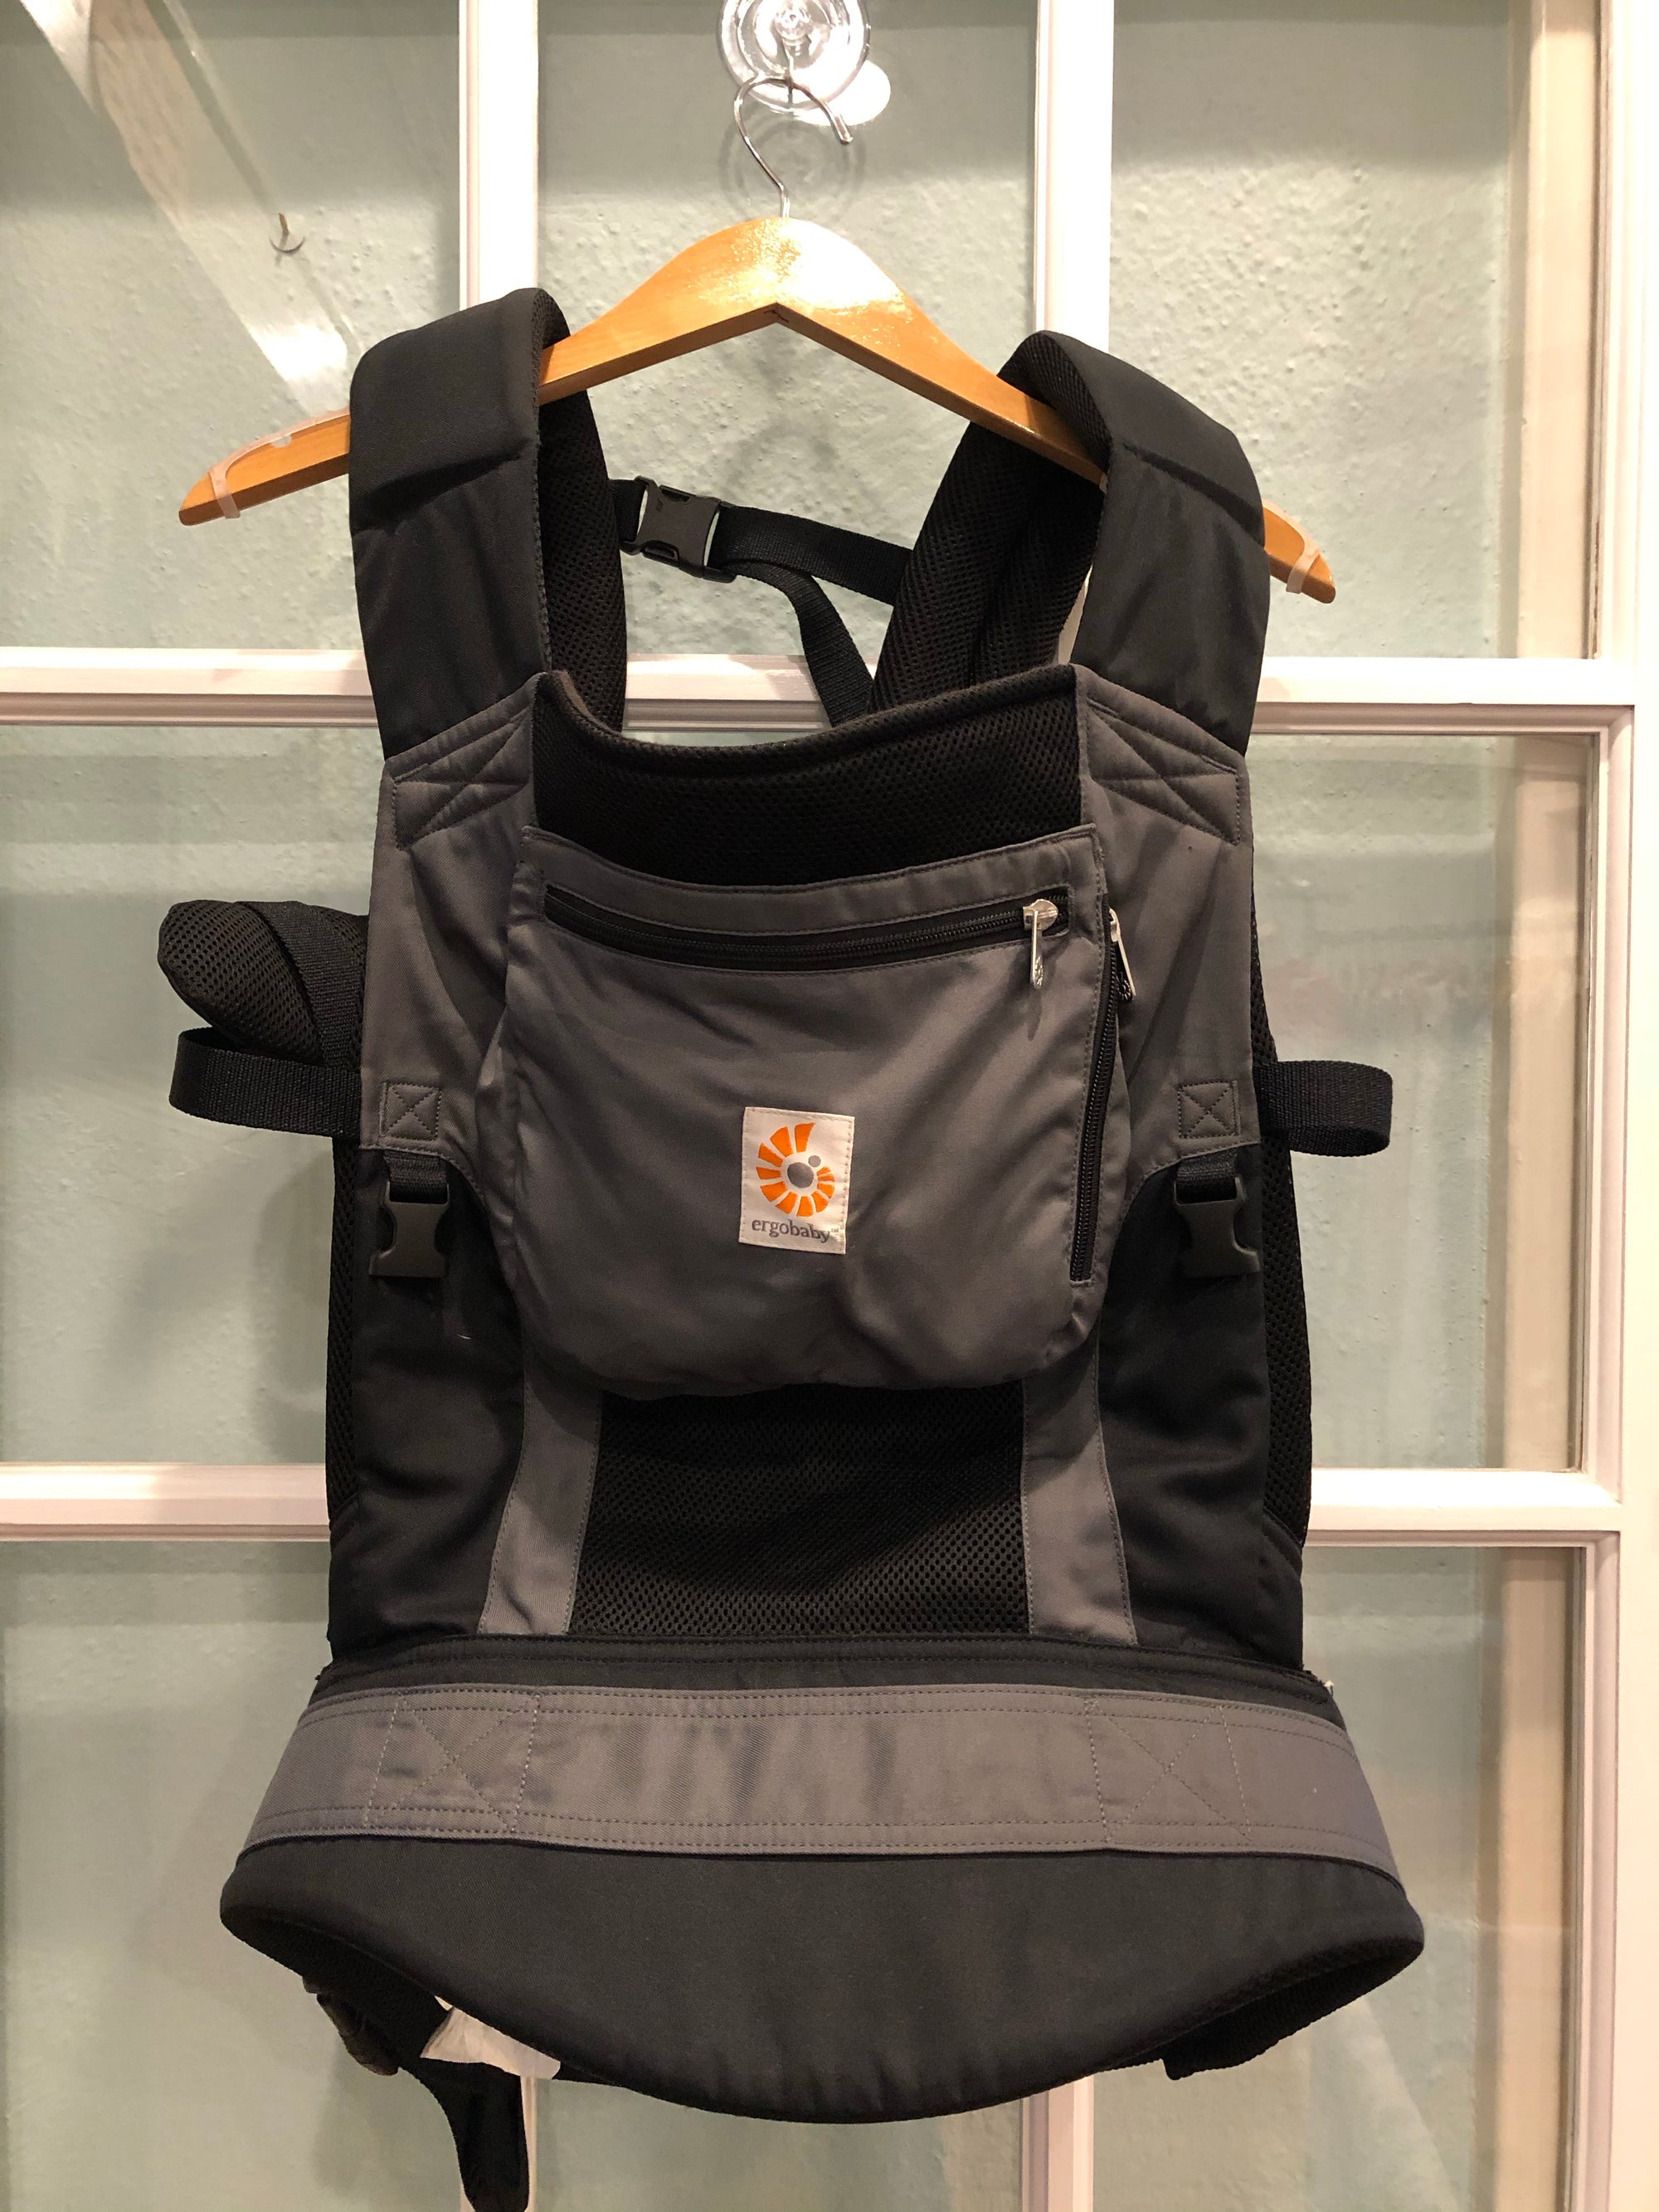 Resale Ergobaby Performance Baby Carrier - Charcoal Grey